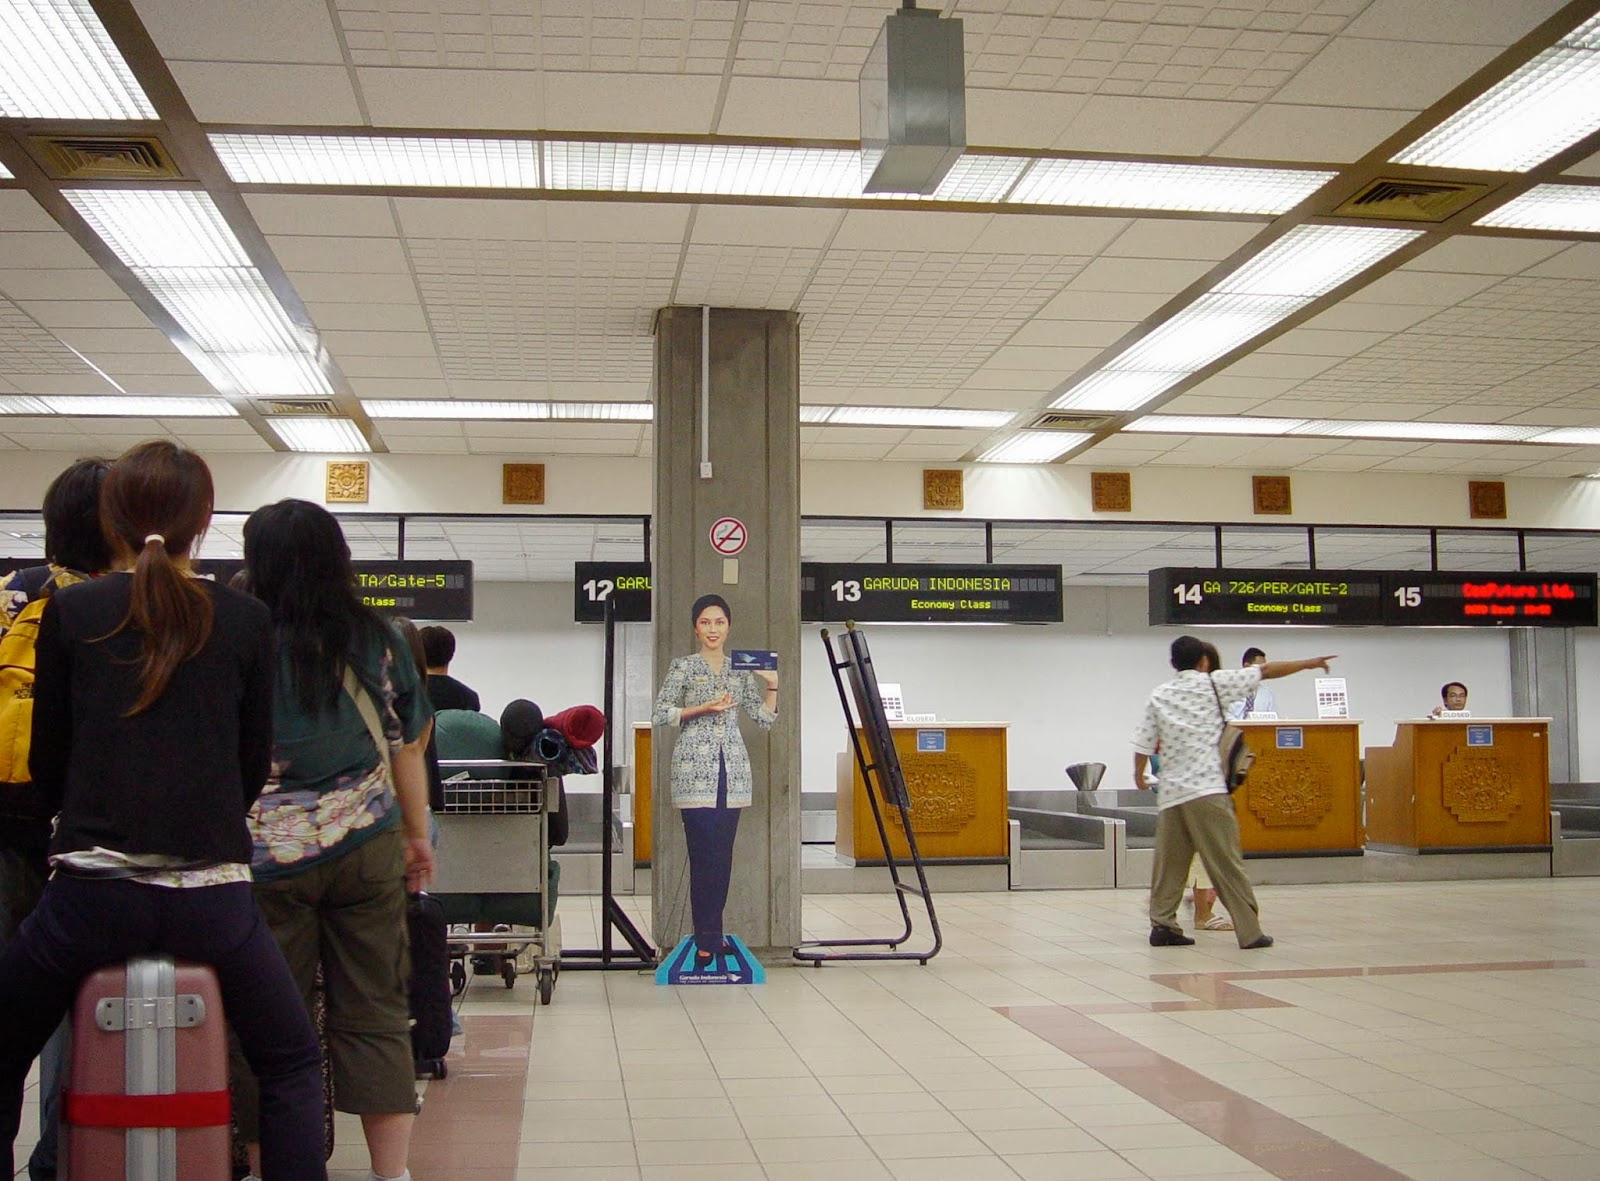 Things to Do When Arrival at Bali Denpasar Airport